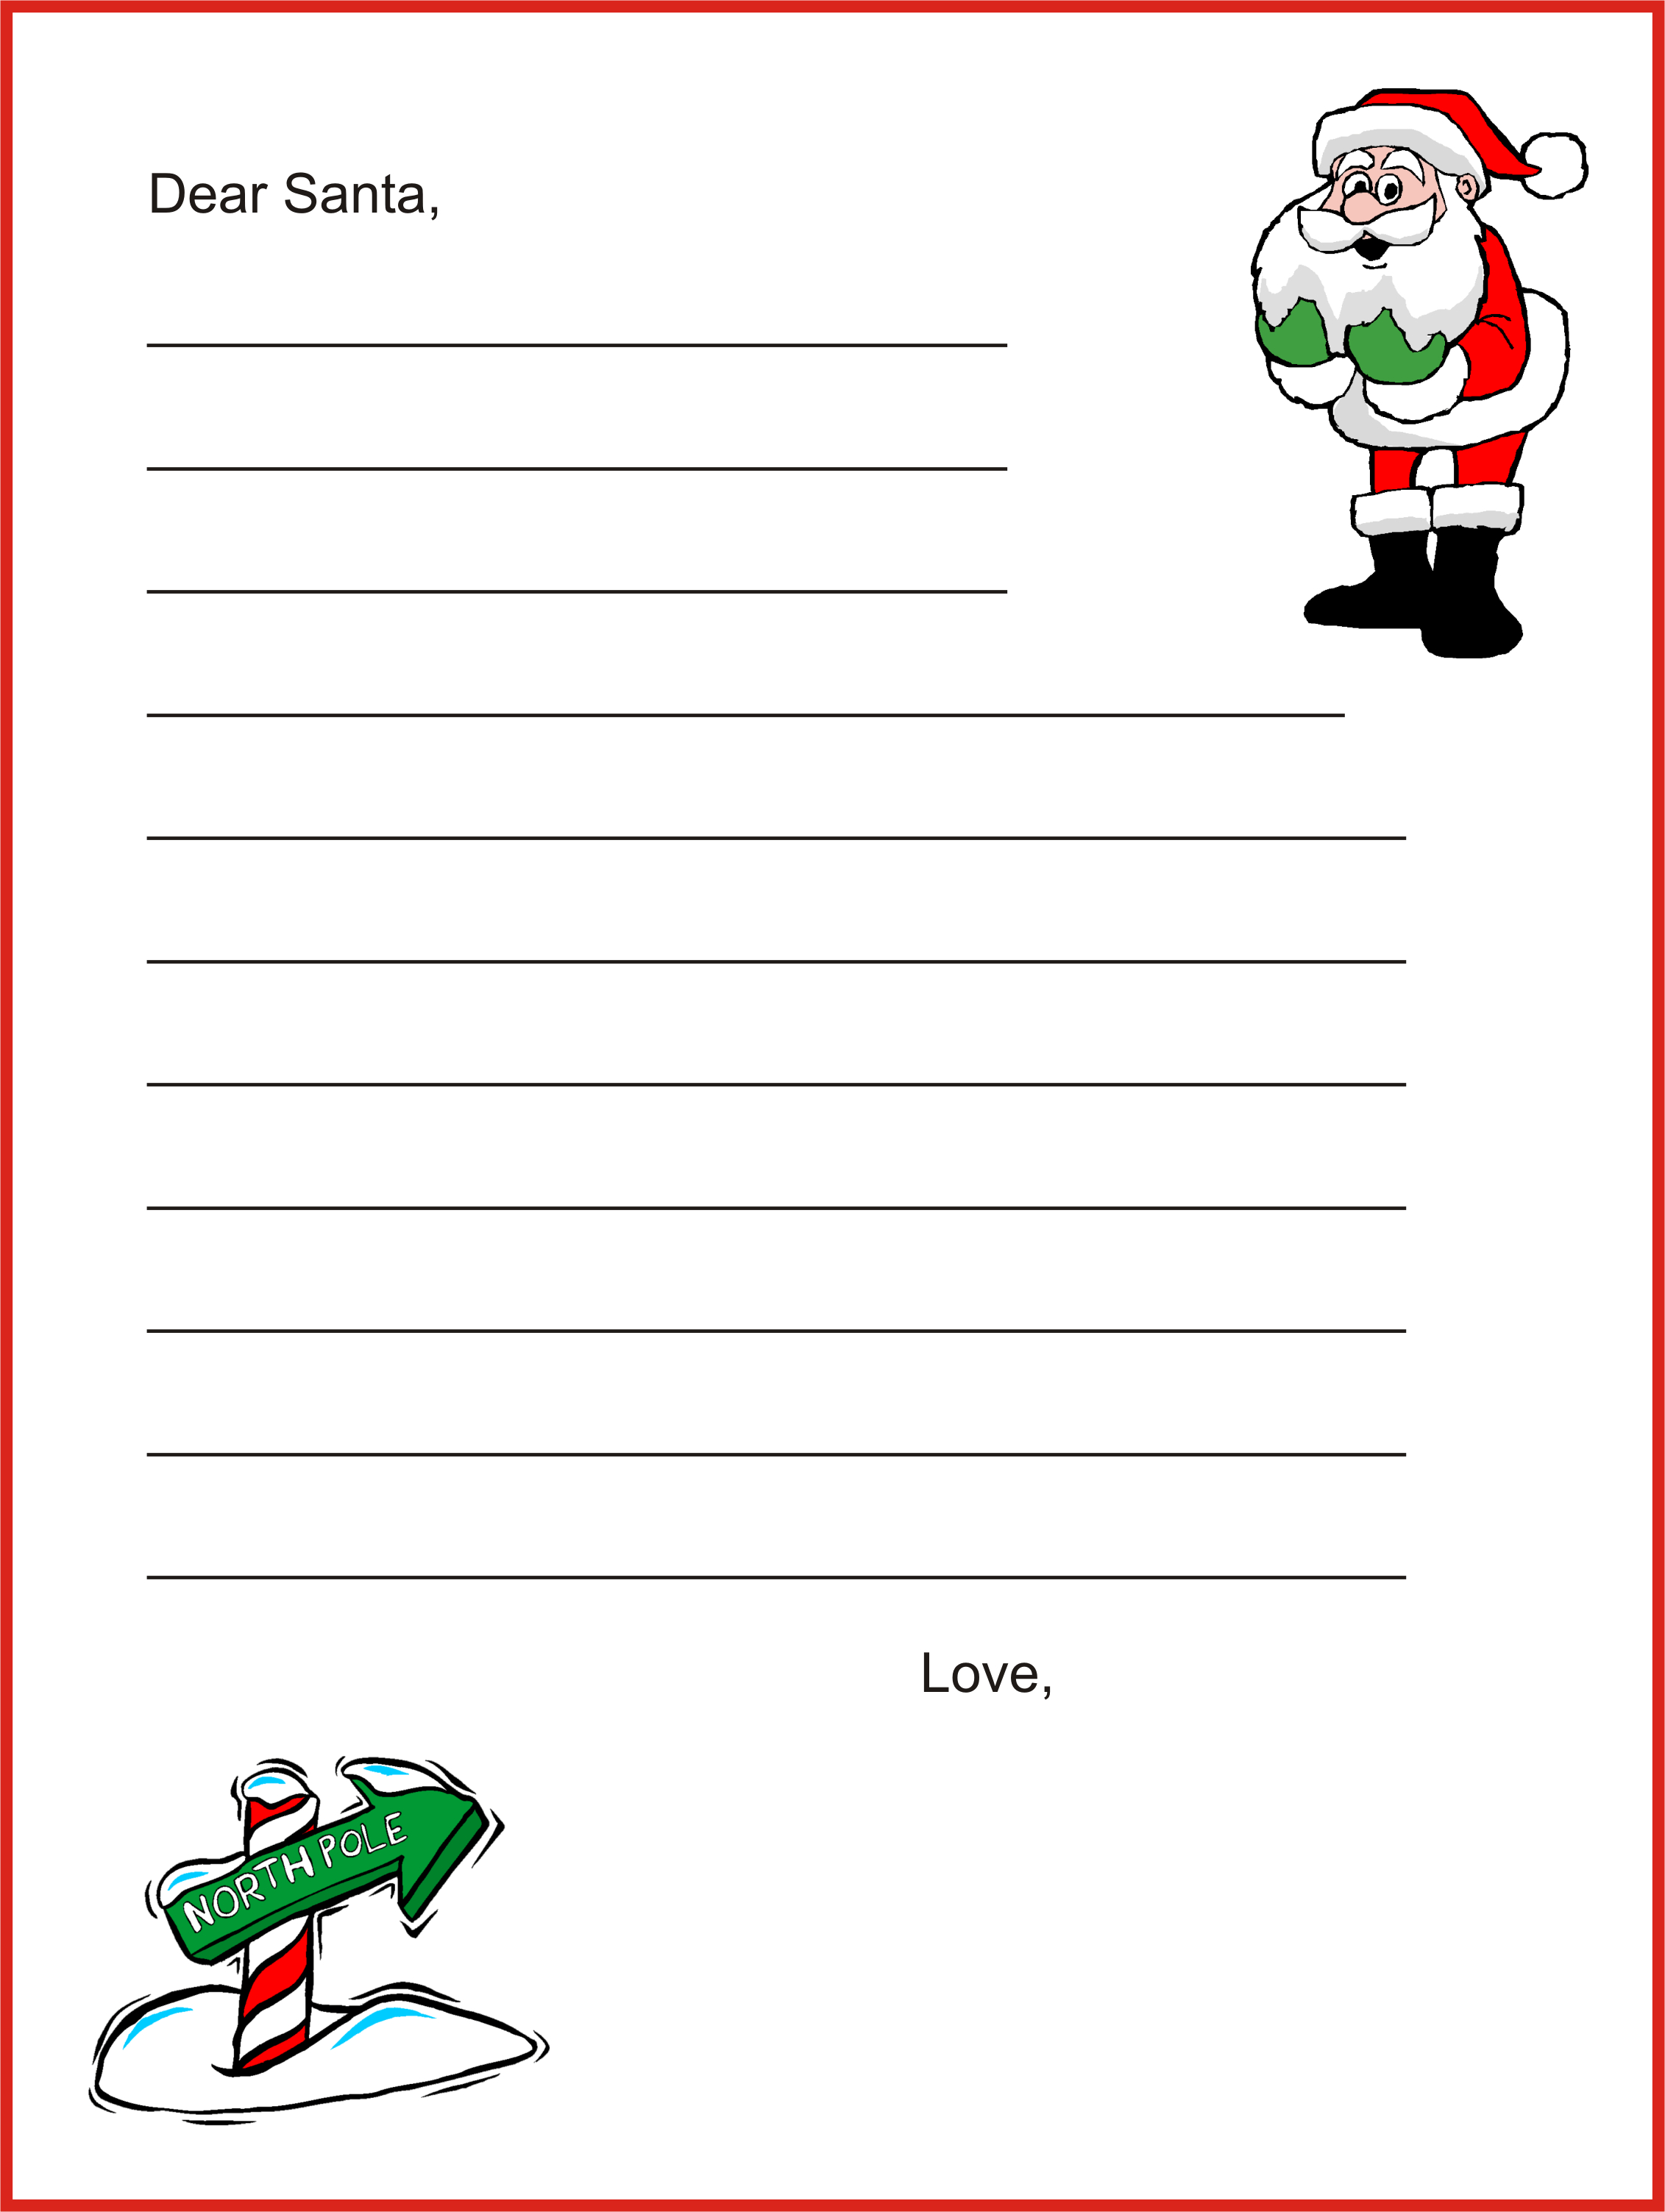 Dear Santa Letter Template - Christmas Letter Tips.com |